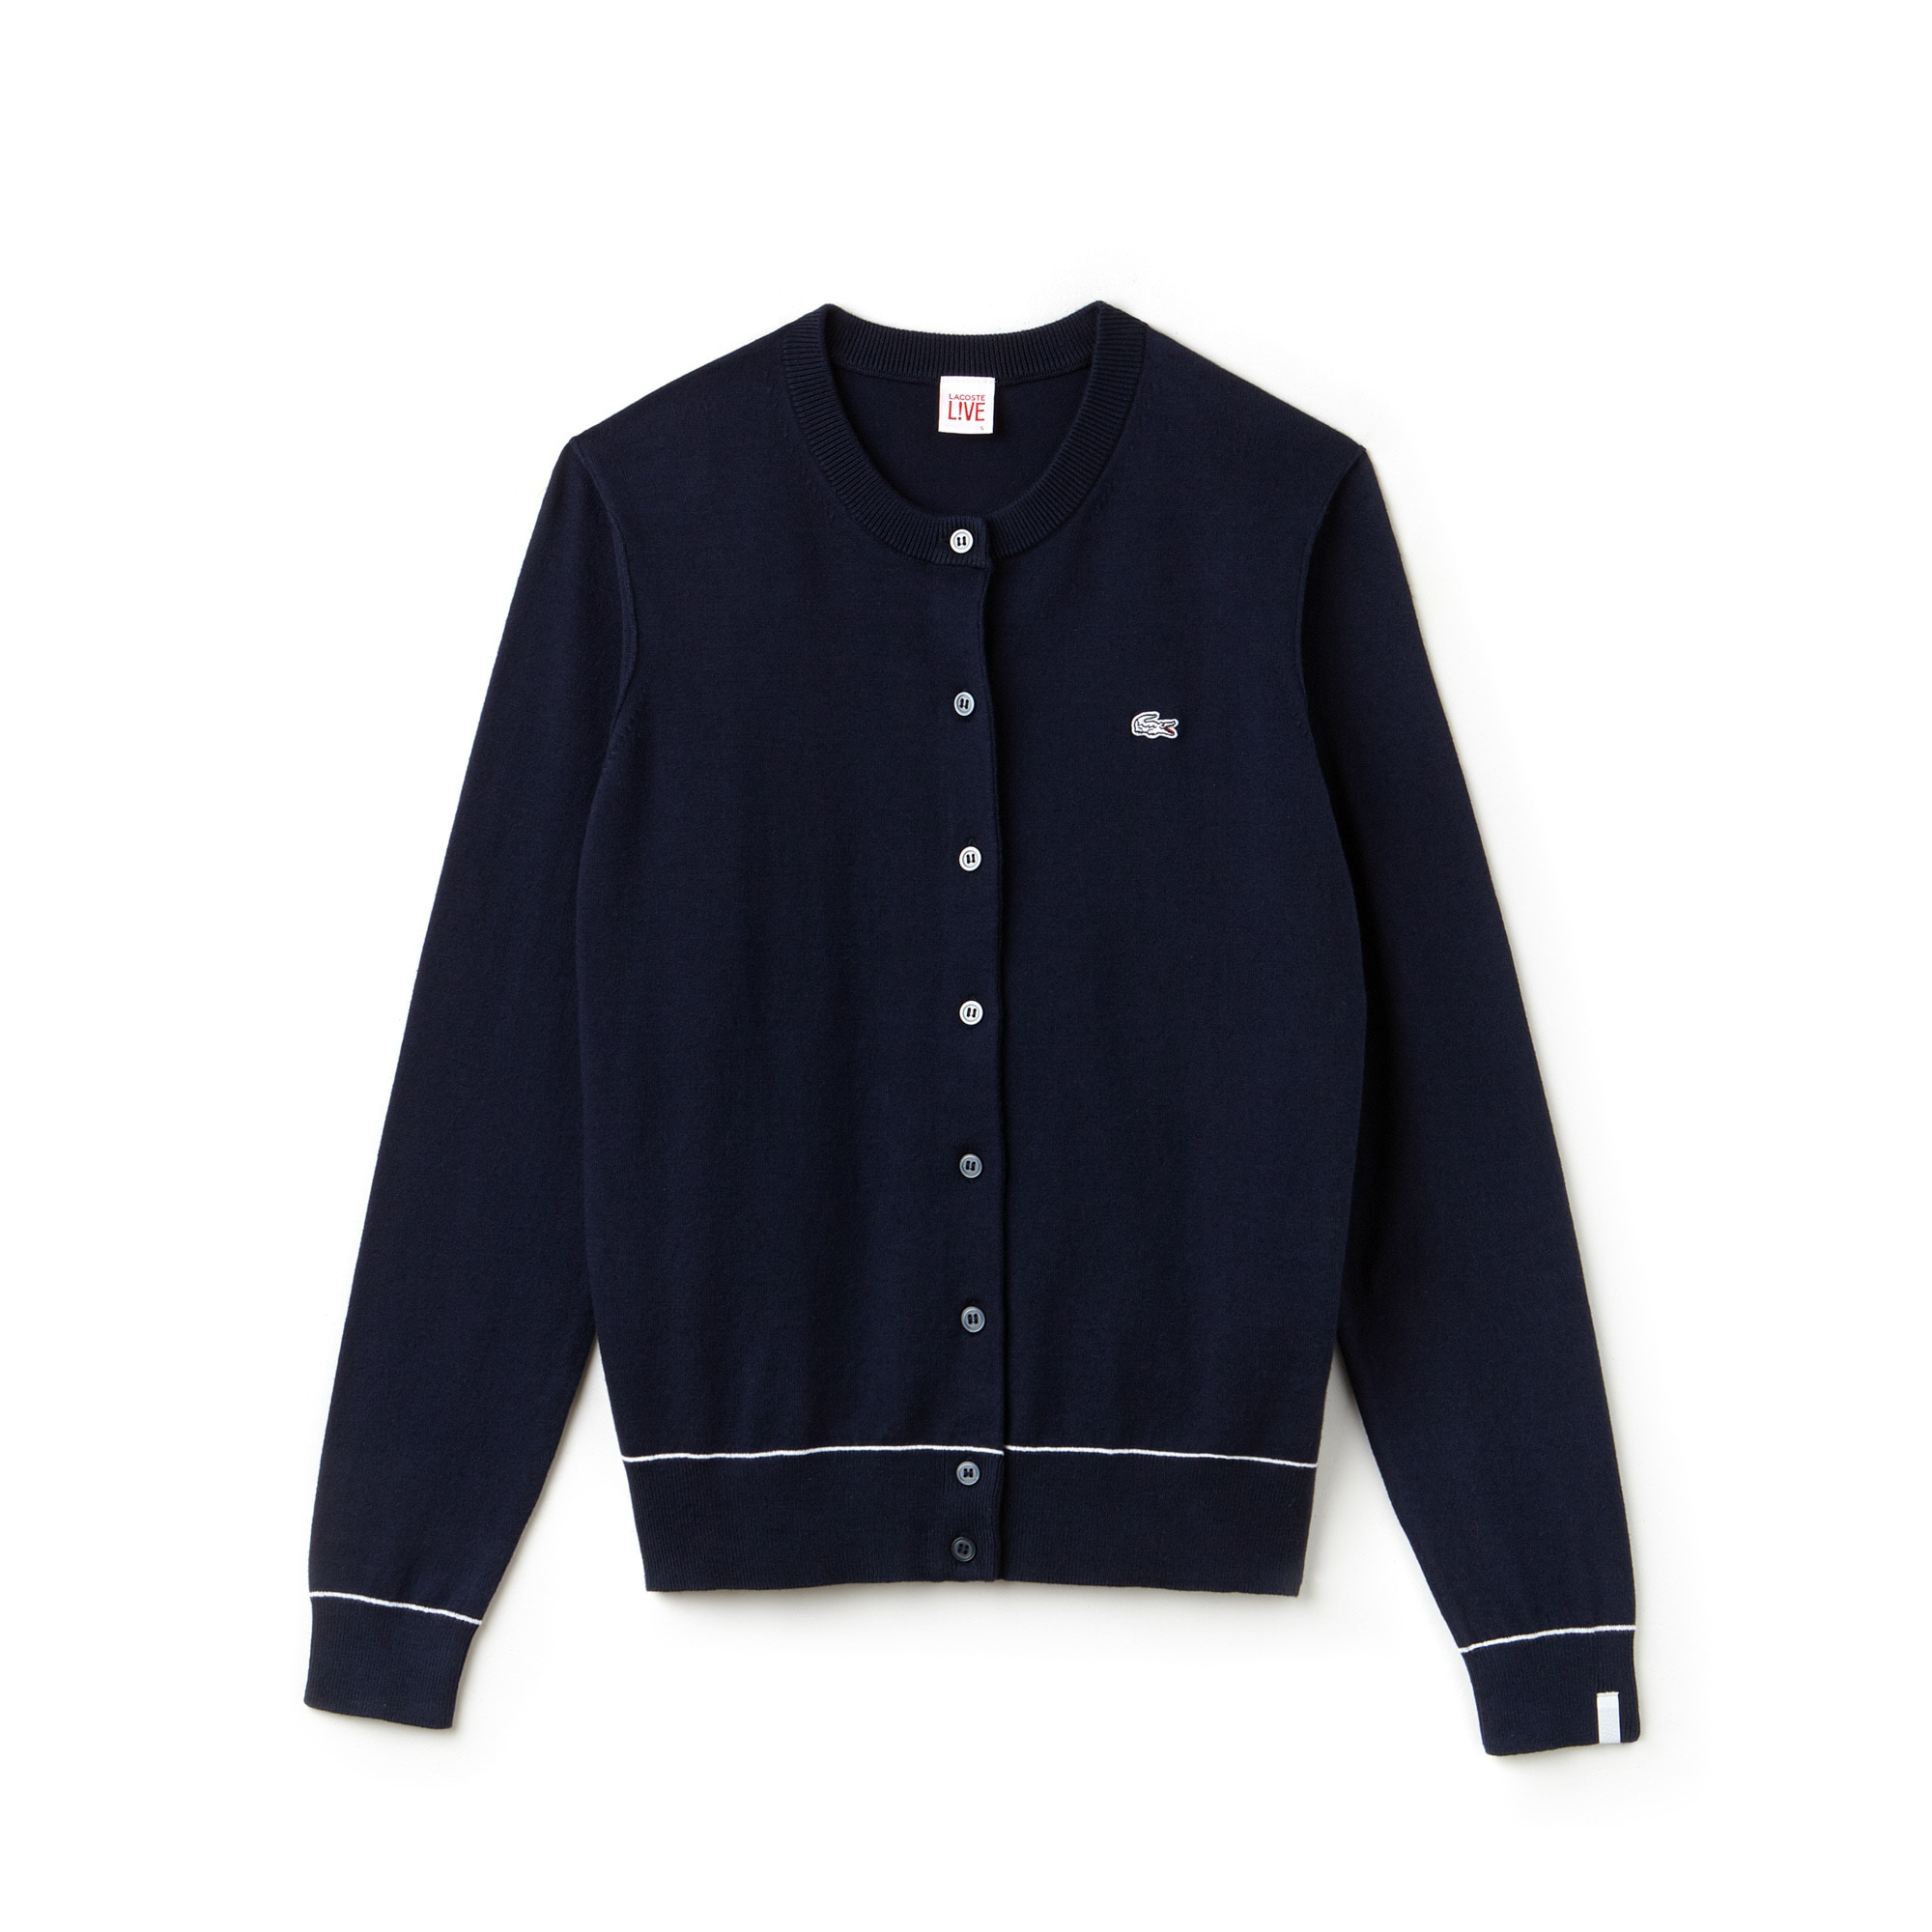 Women's Lacoste LIVE Crew Neck Cotton And Silk Jersey Cardigan